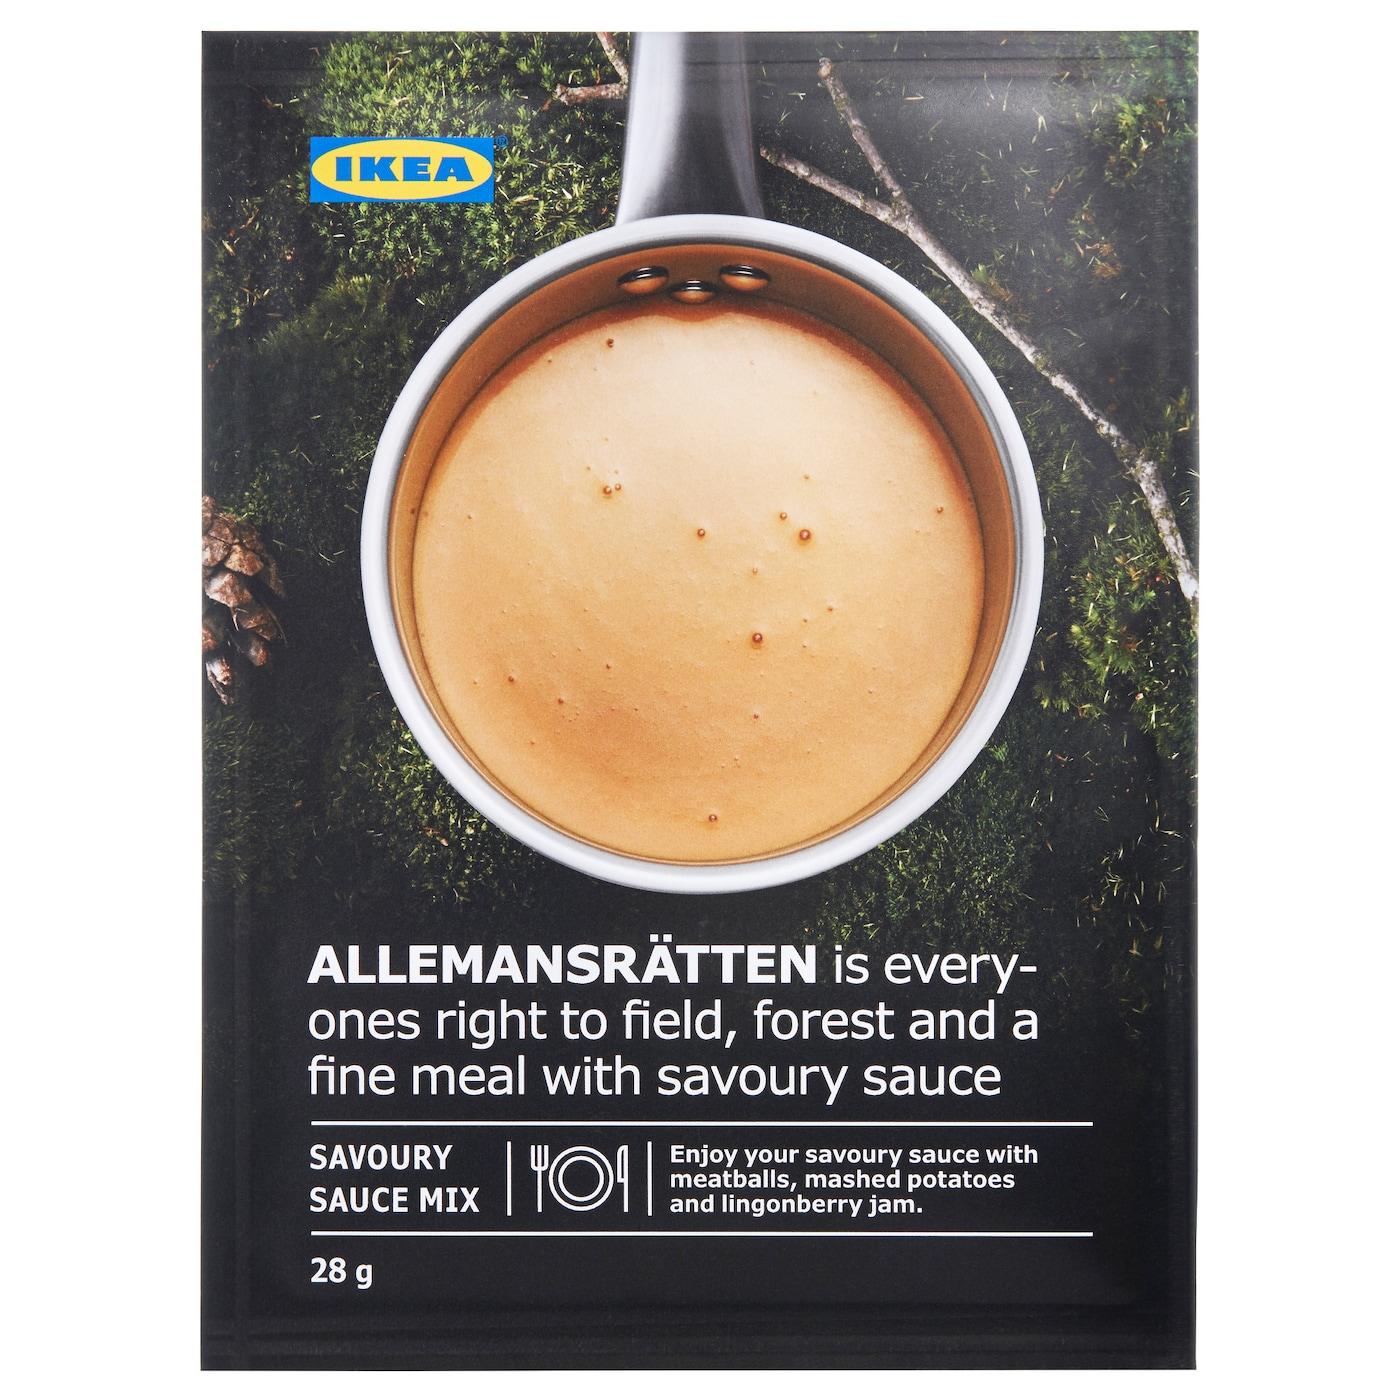 IKEA ALLEMANSRÄTTEN mix for cream sauce